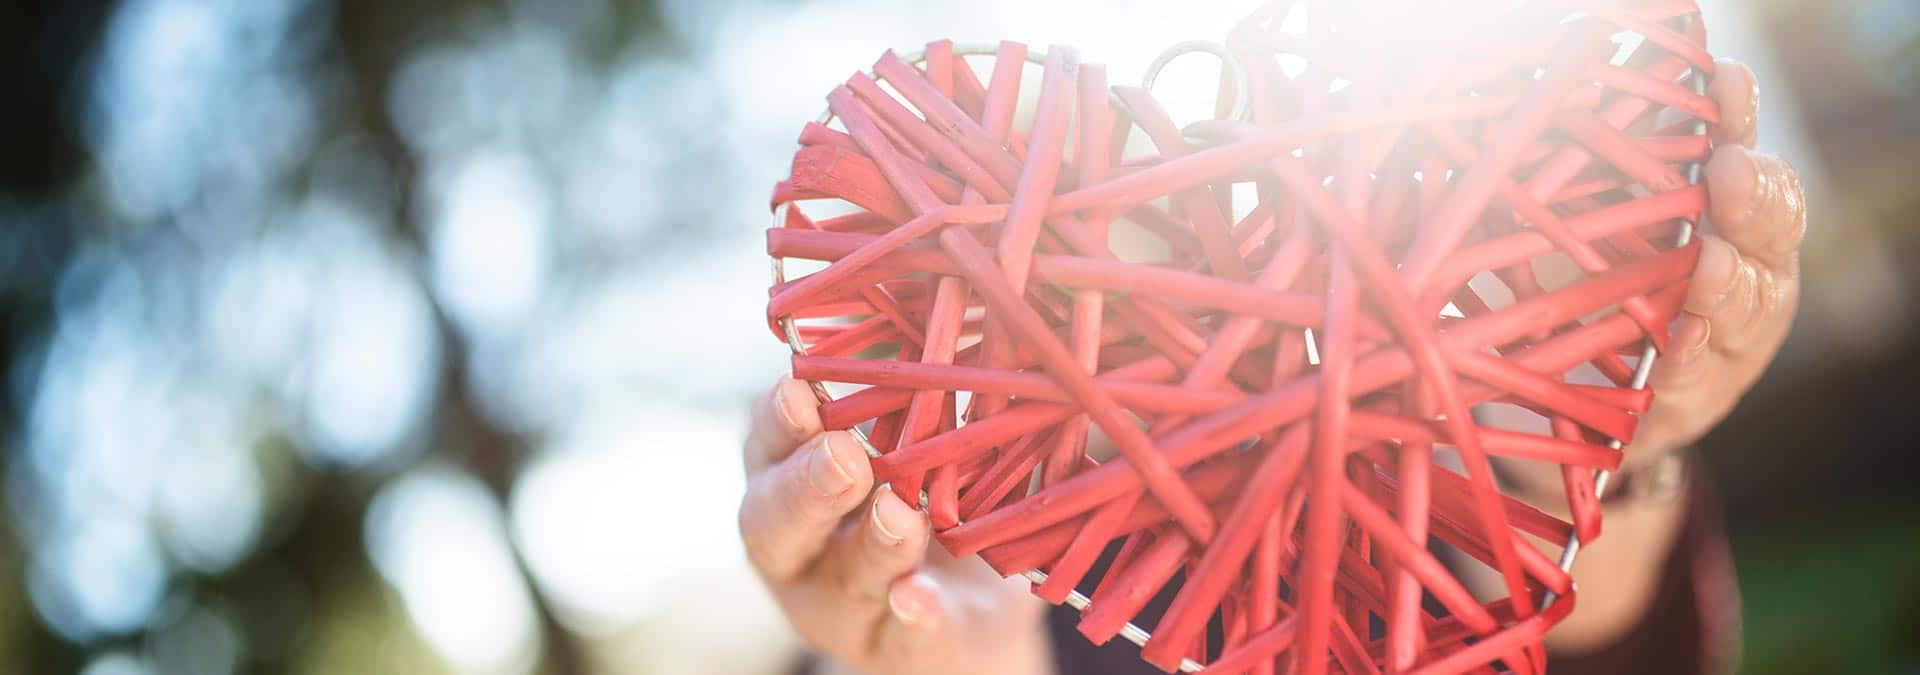 Red wicker heart held up by person.